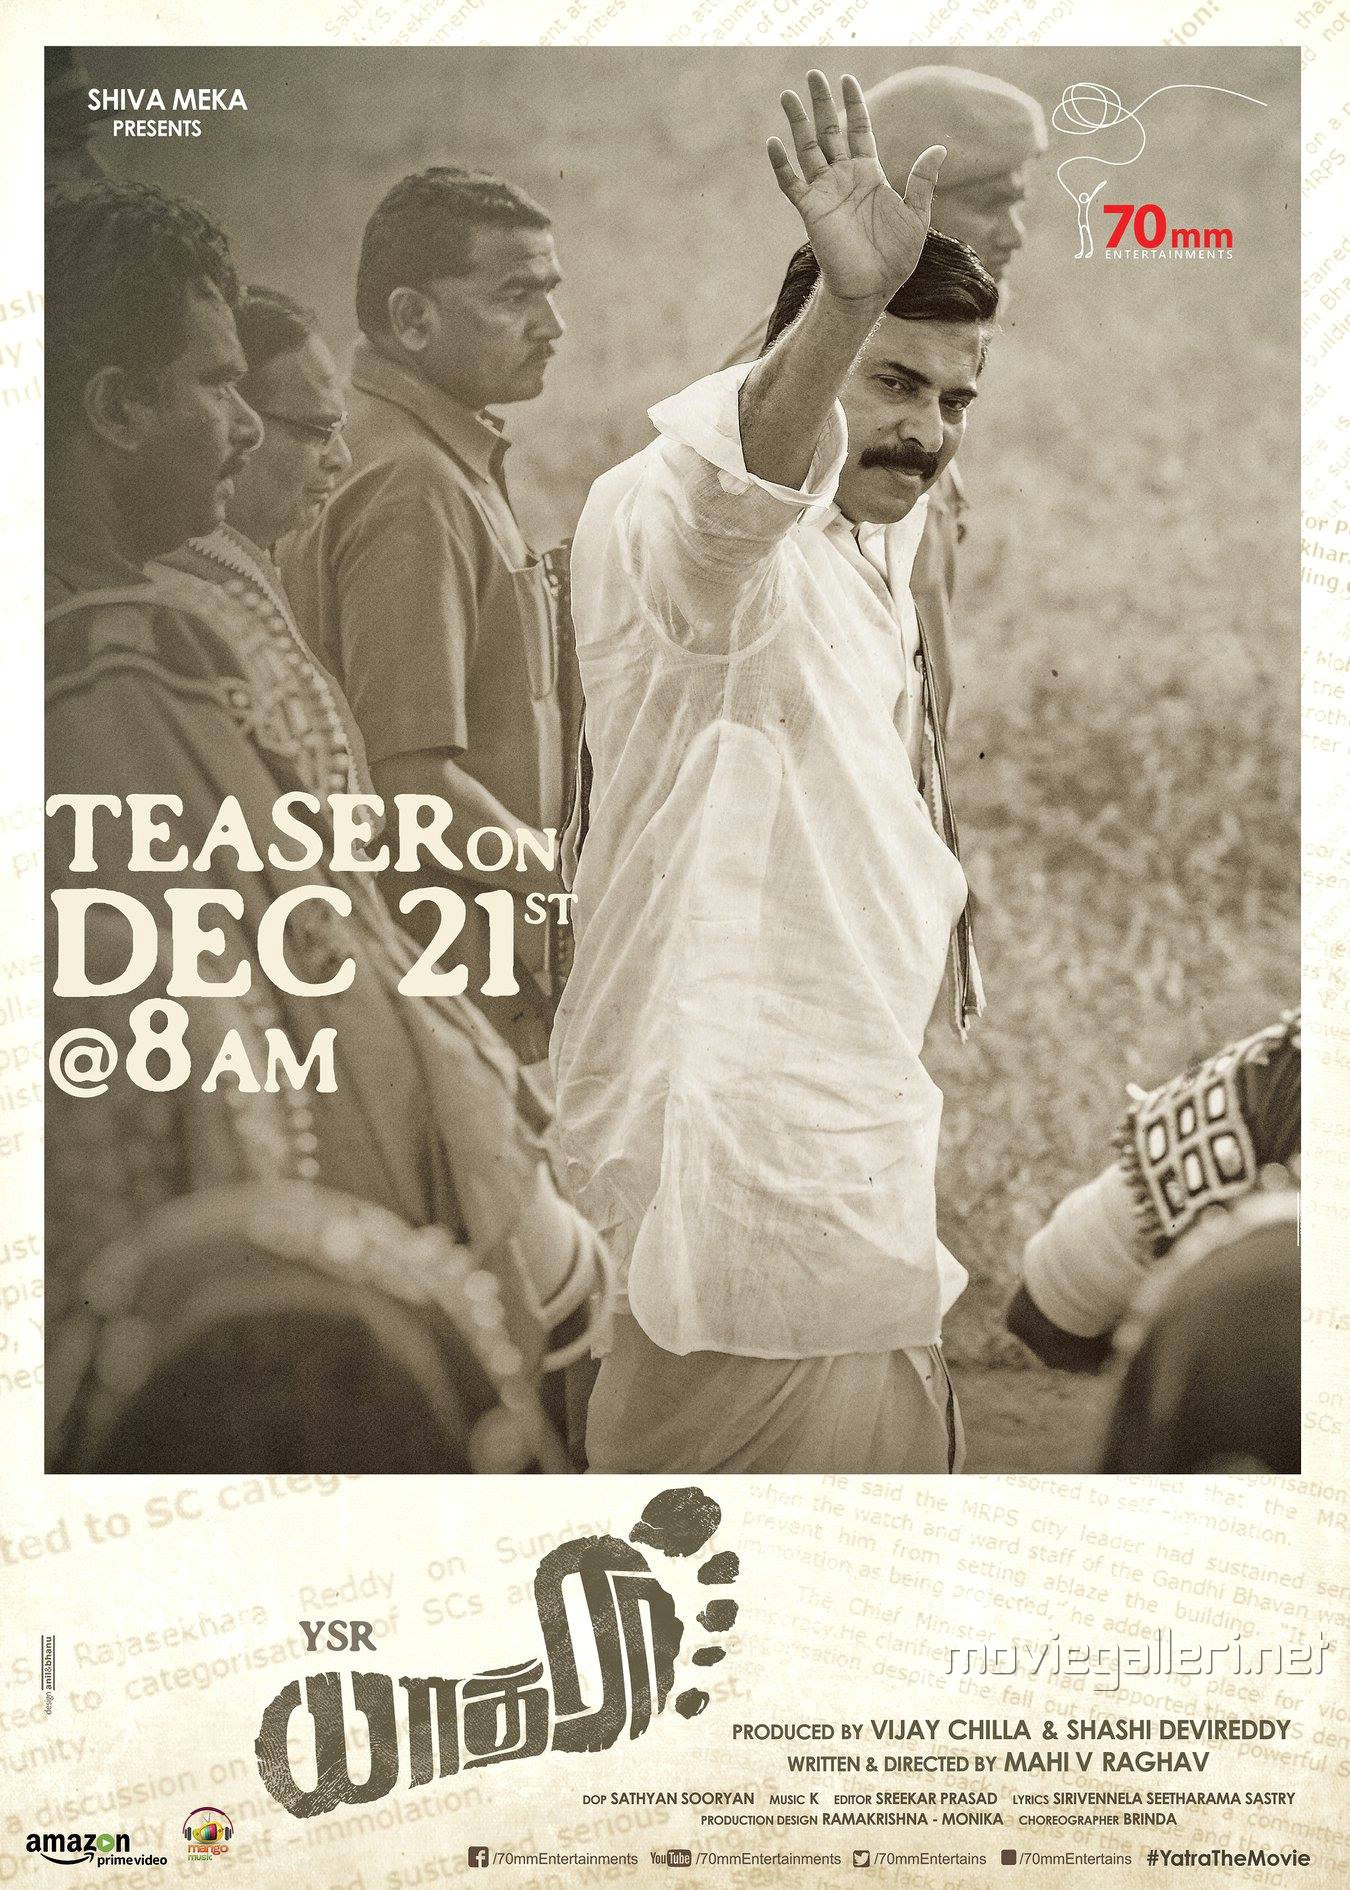 Mammootty Yatra tamil movie teaser on December 21st Posters HD